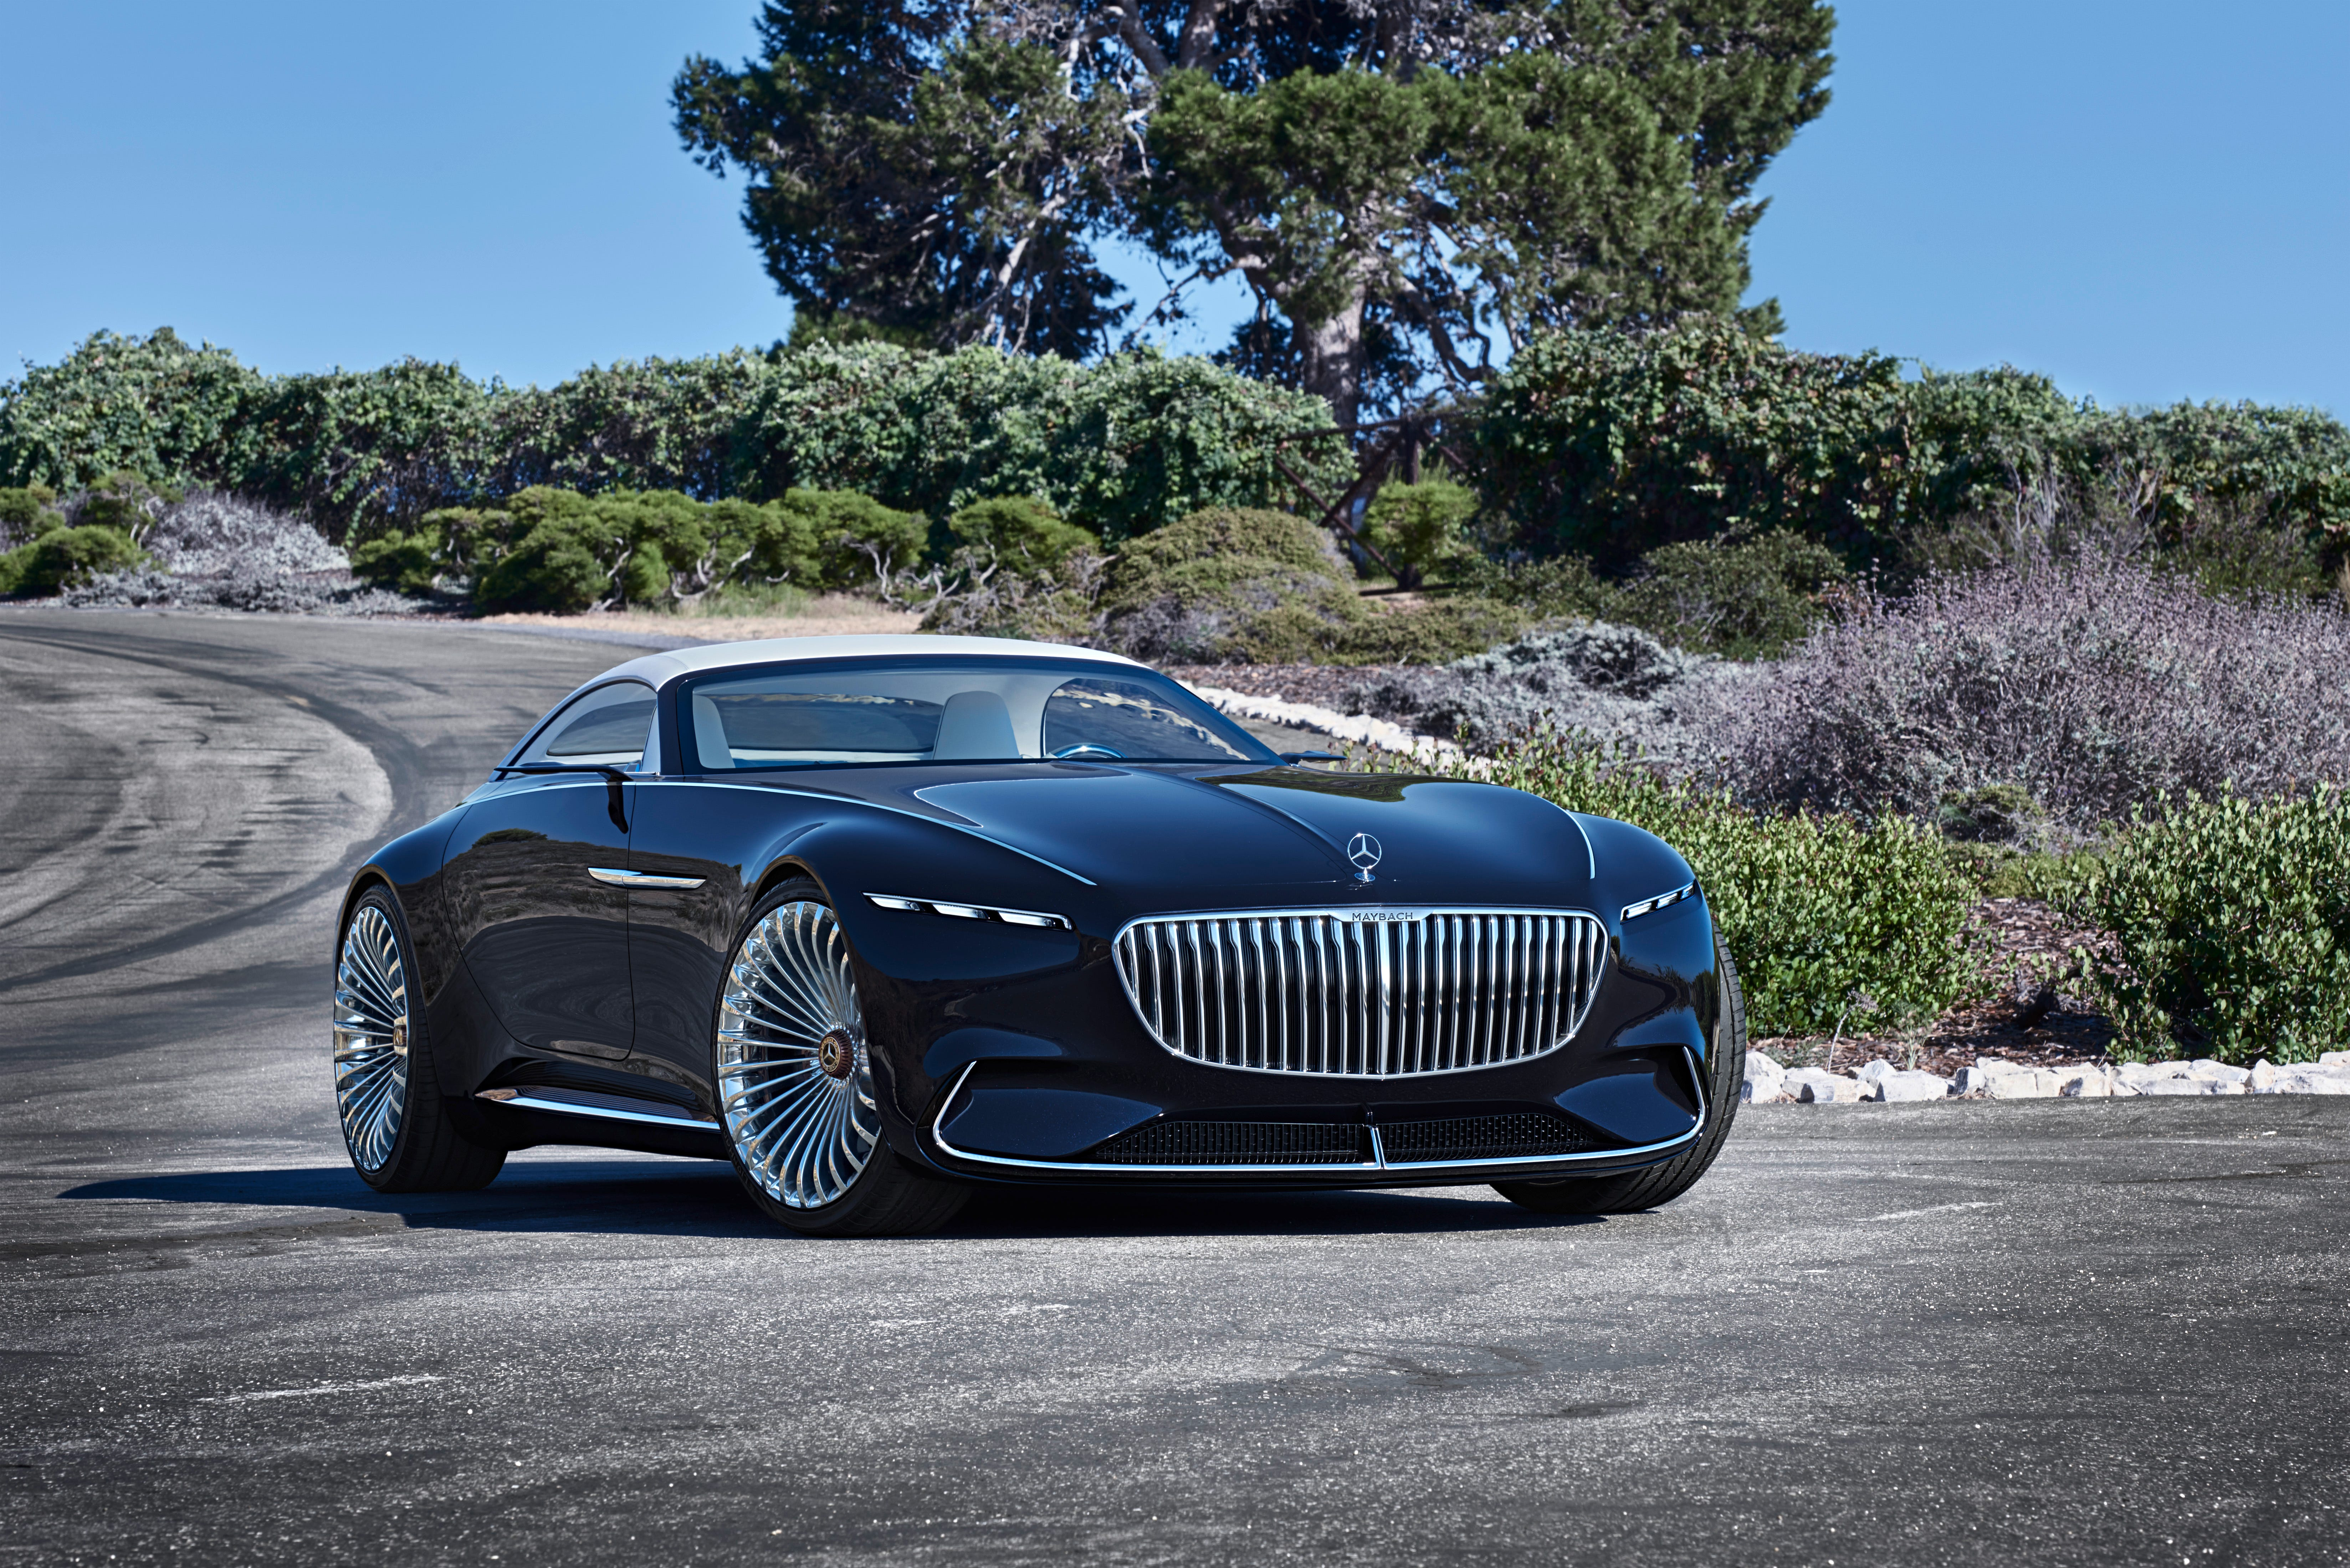 Wonderful The Vision Mercedes Maybach 6 Cabriolet Was Just Introduced